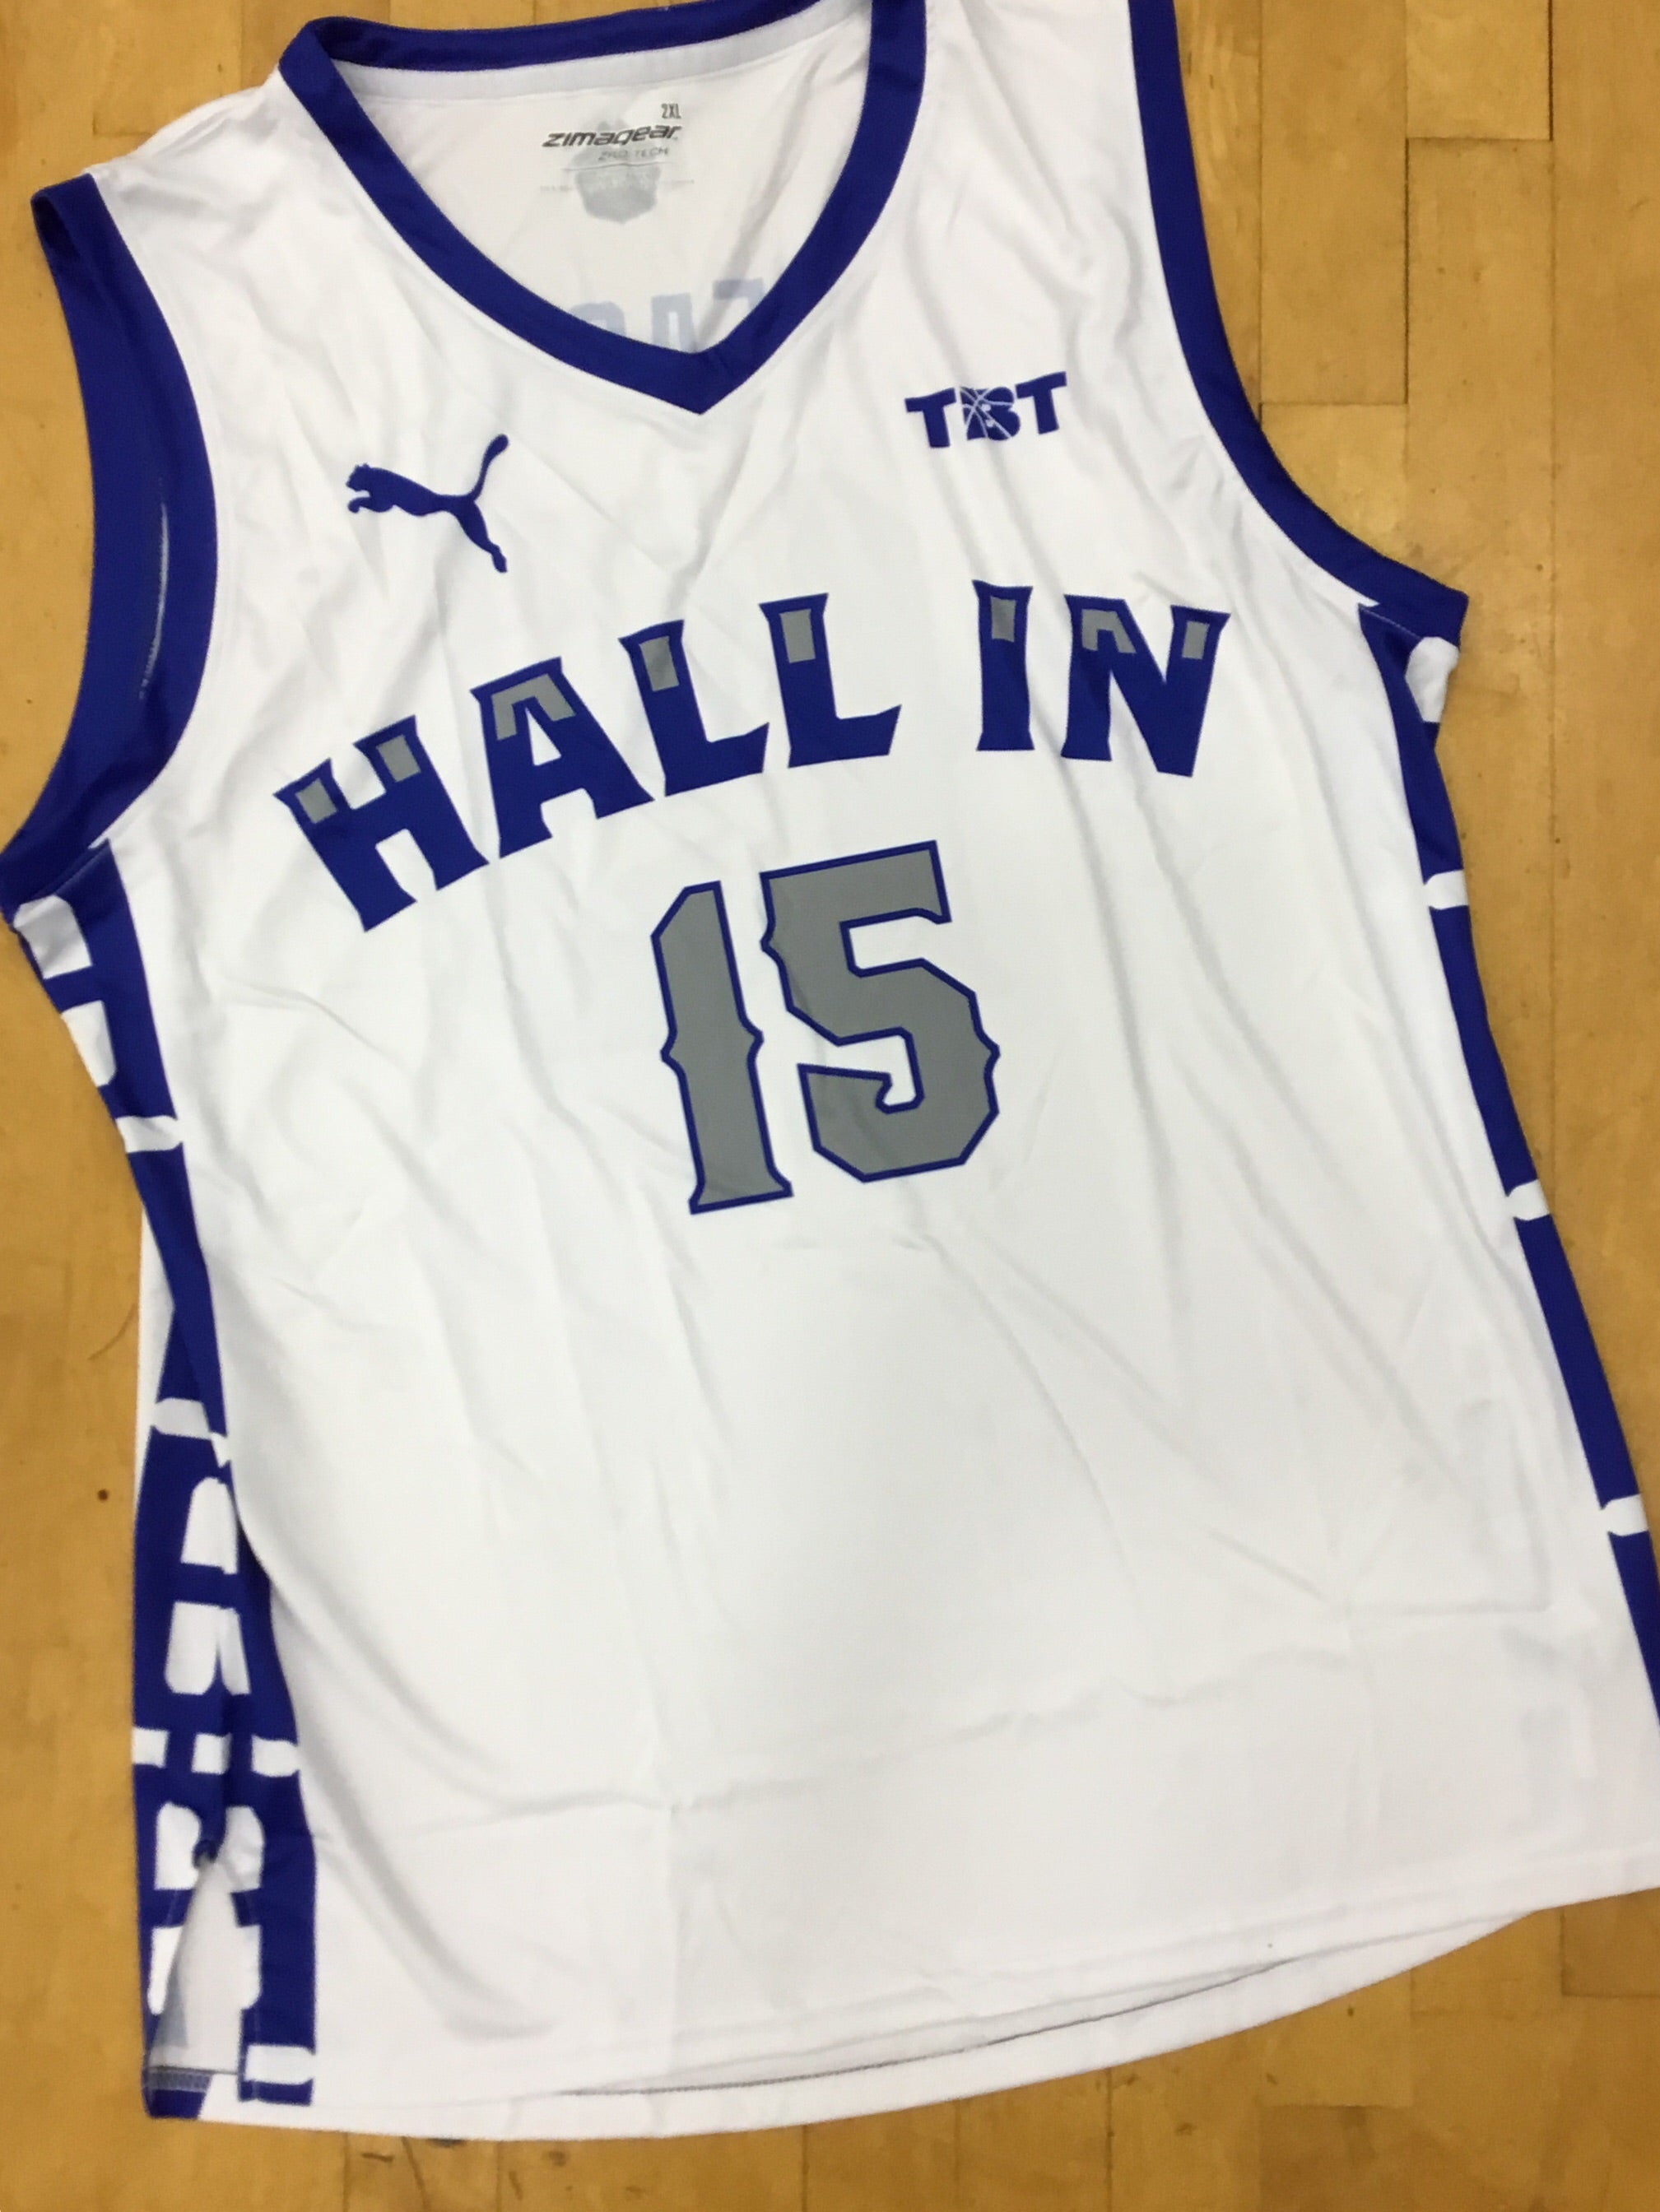 Hall In (Seton Hall) - 2018 Official Jersey